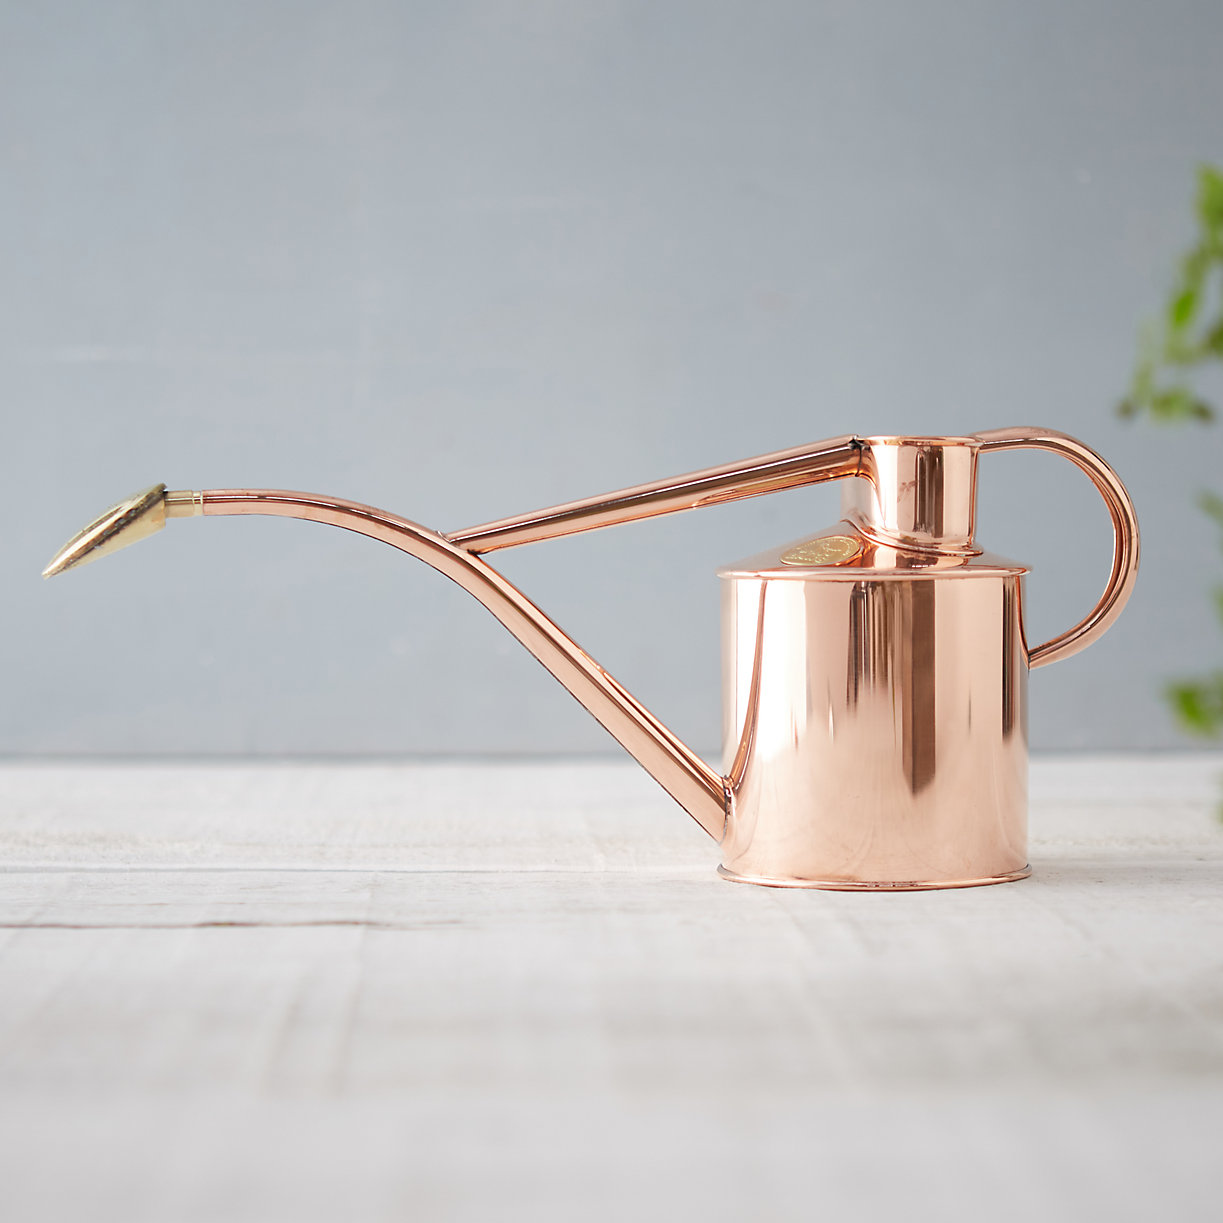 Copper watering can from Terrain